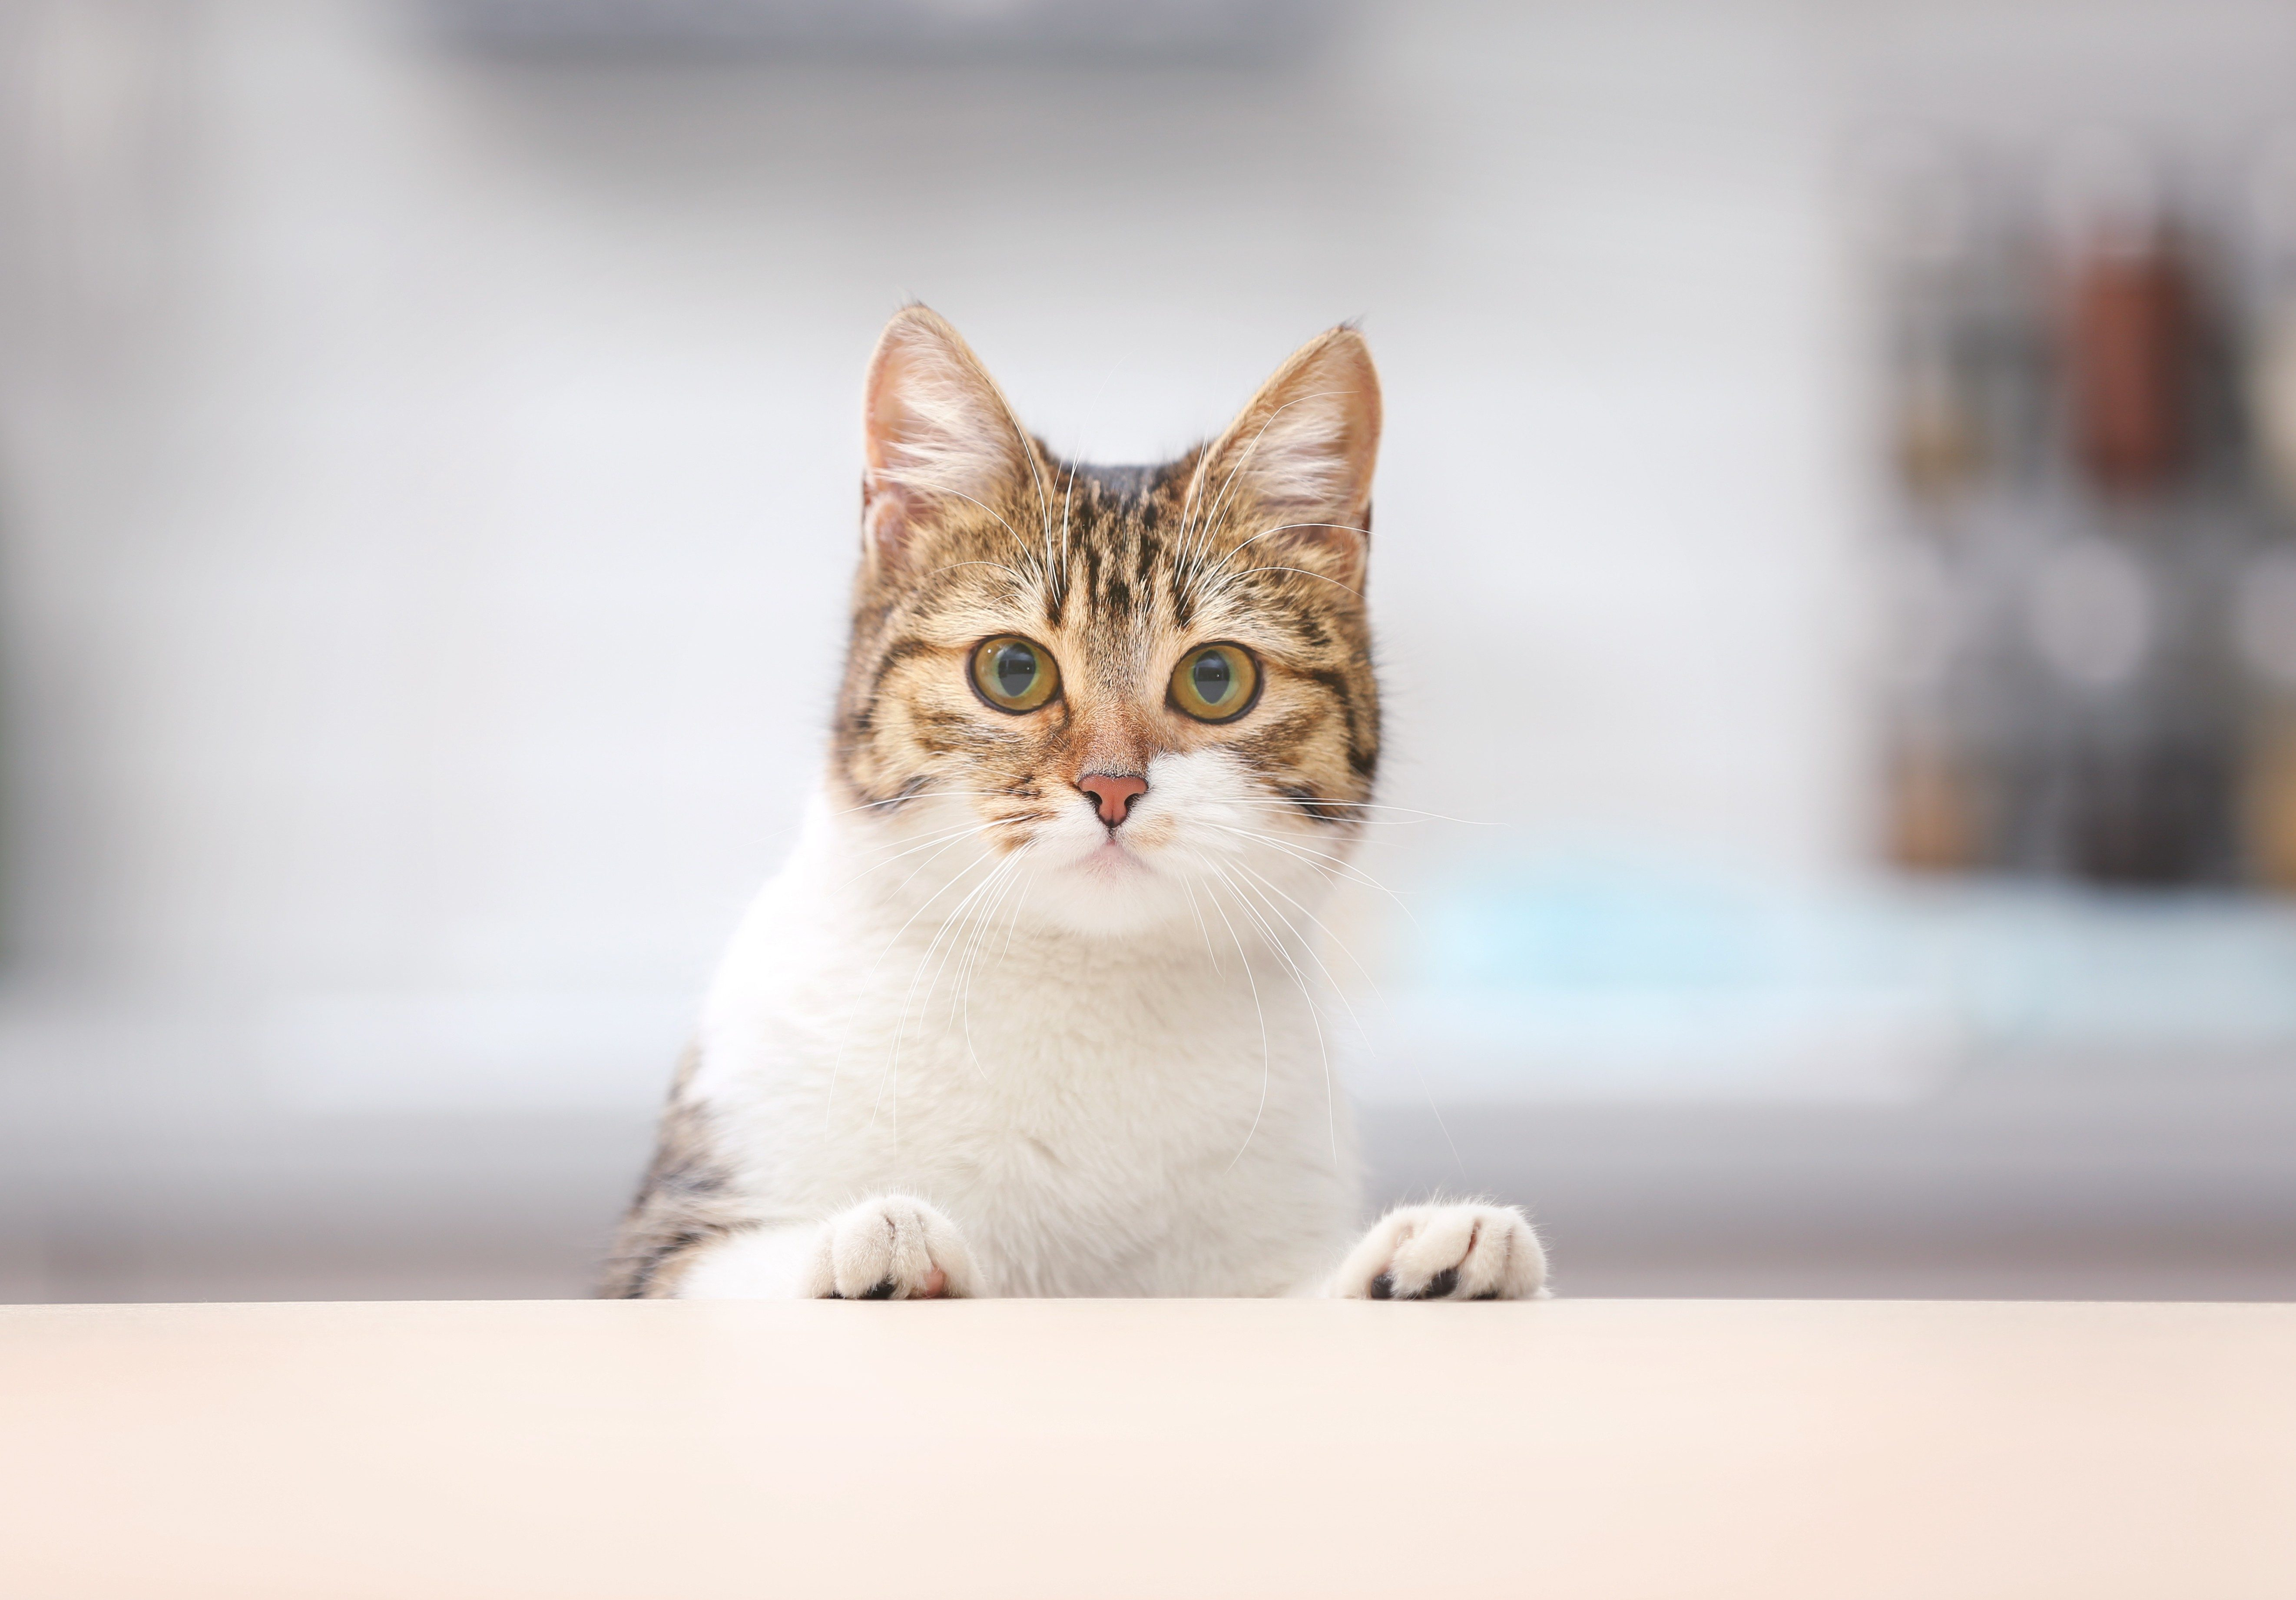 Cute funny cat at kitchen table on blurred background